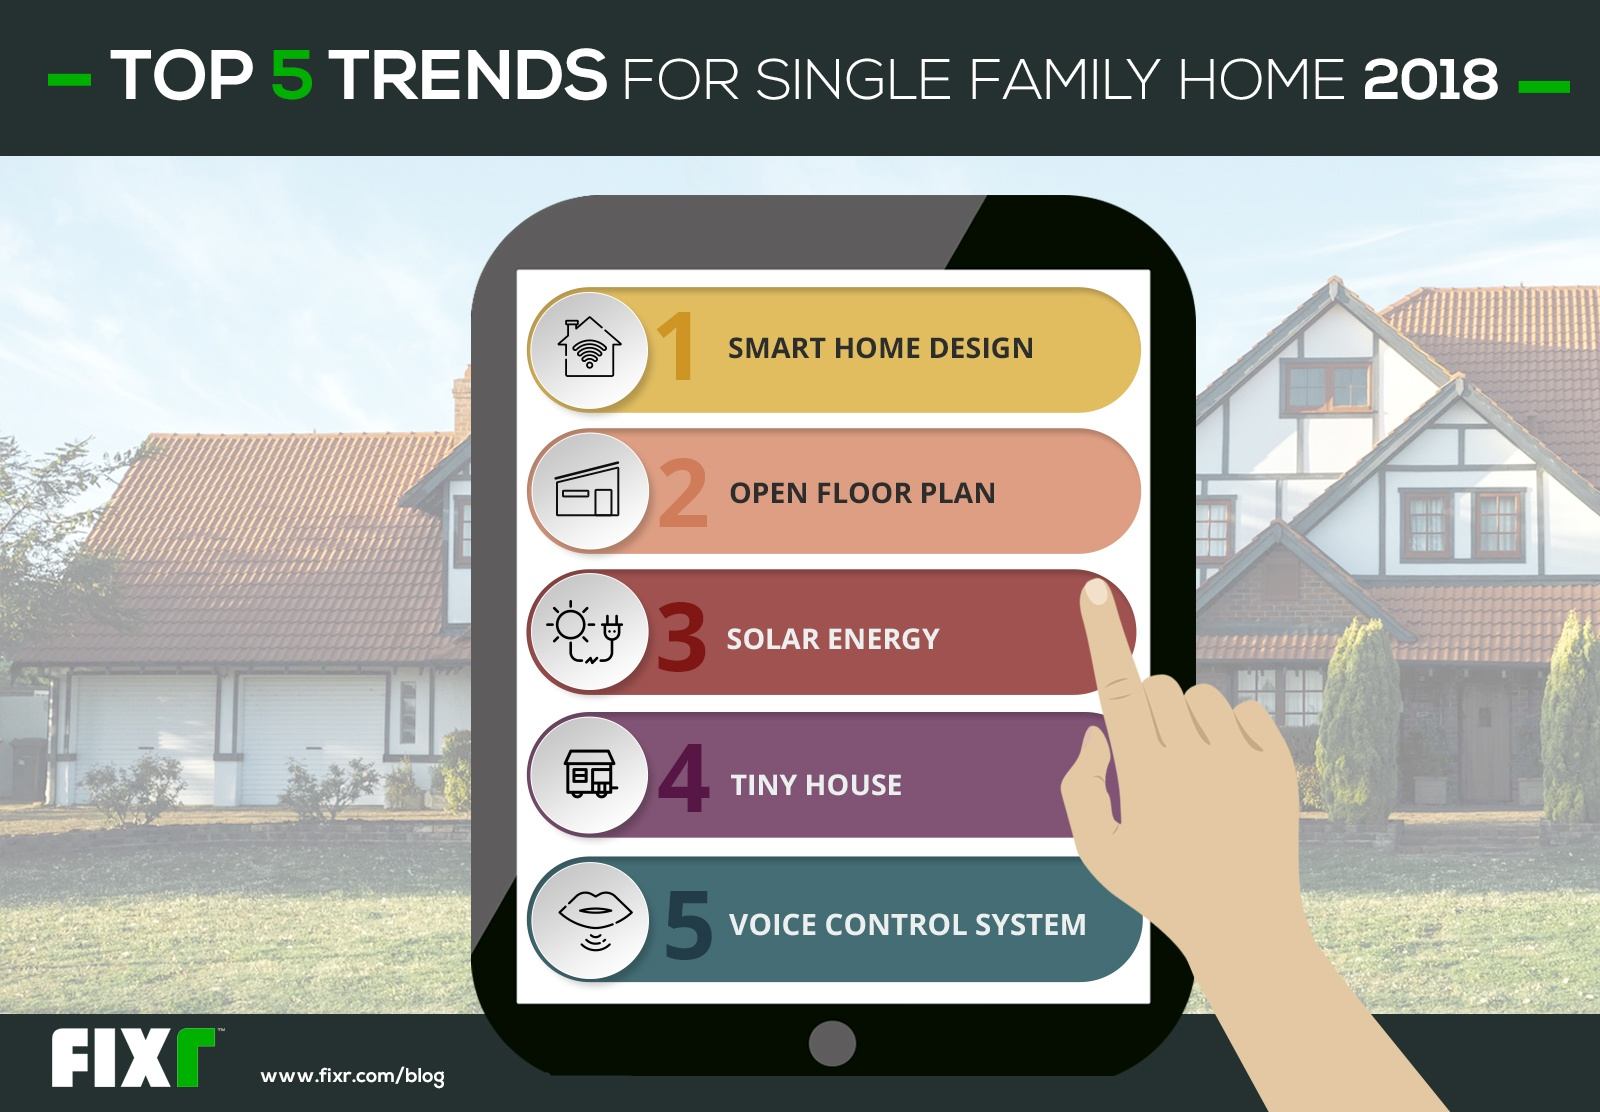 Experts Predict Smart Home Surge in 2018 Amongst Other Single-Family Home Trends